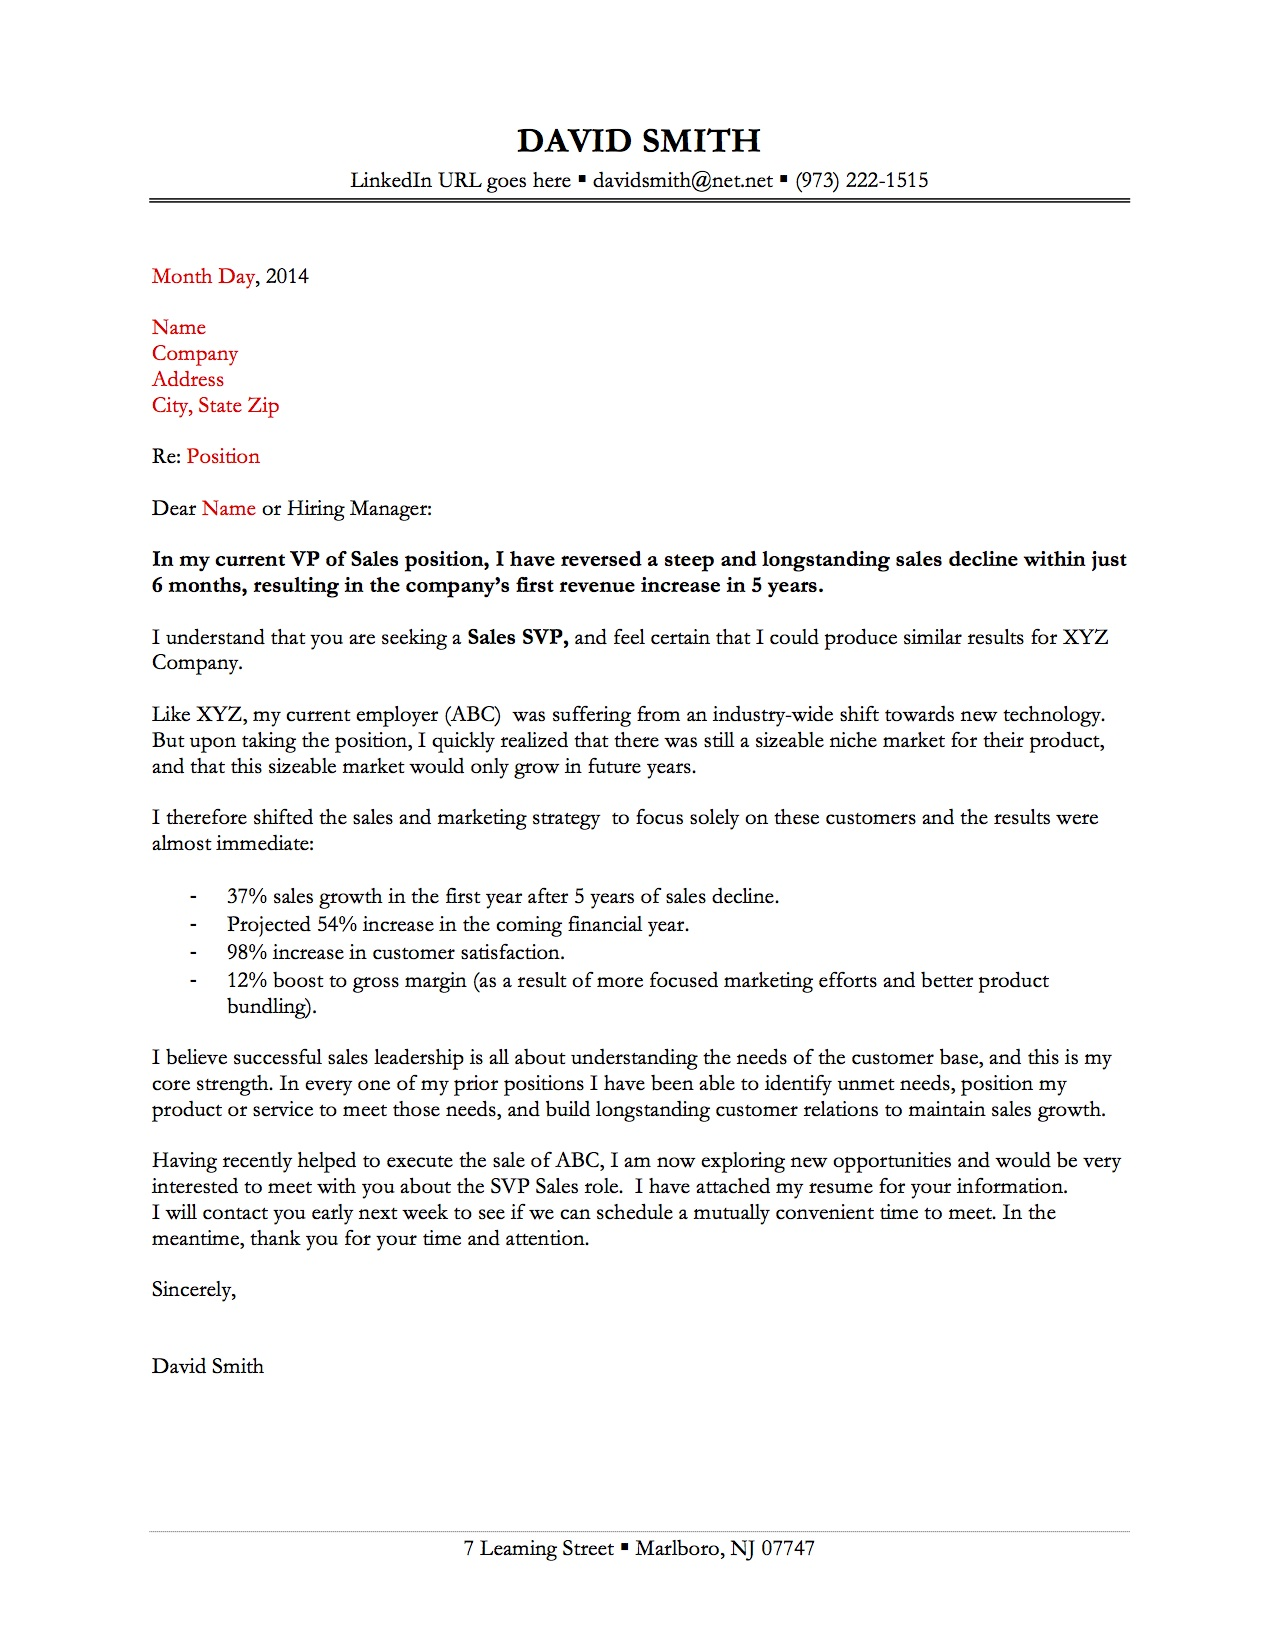 Sample Cover Letter 2  What Is In A Cover Letter